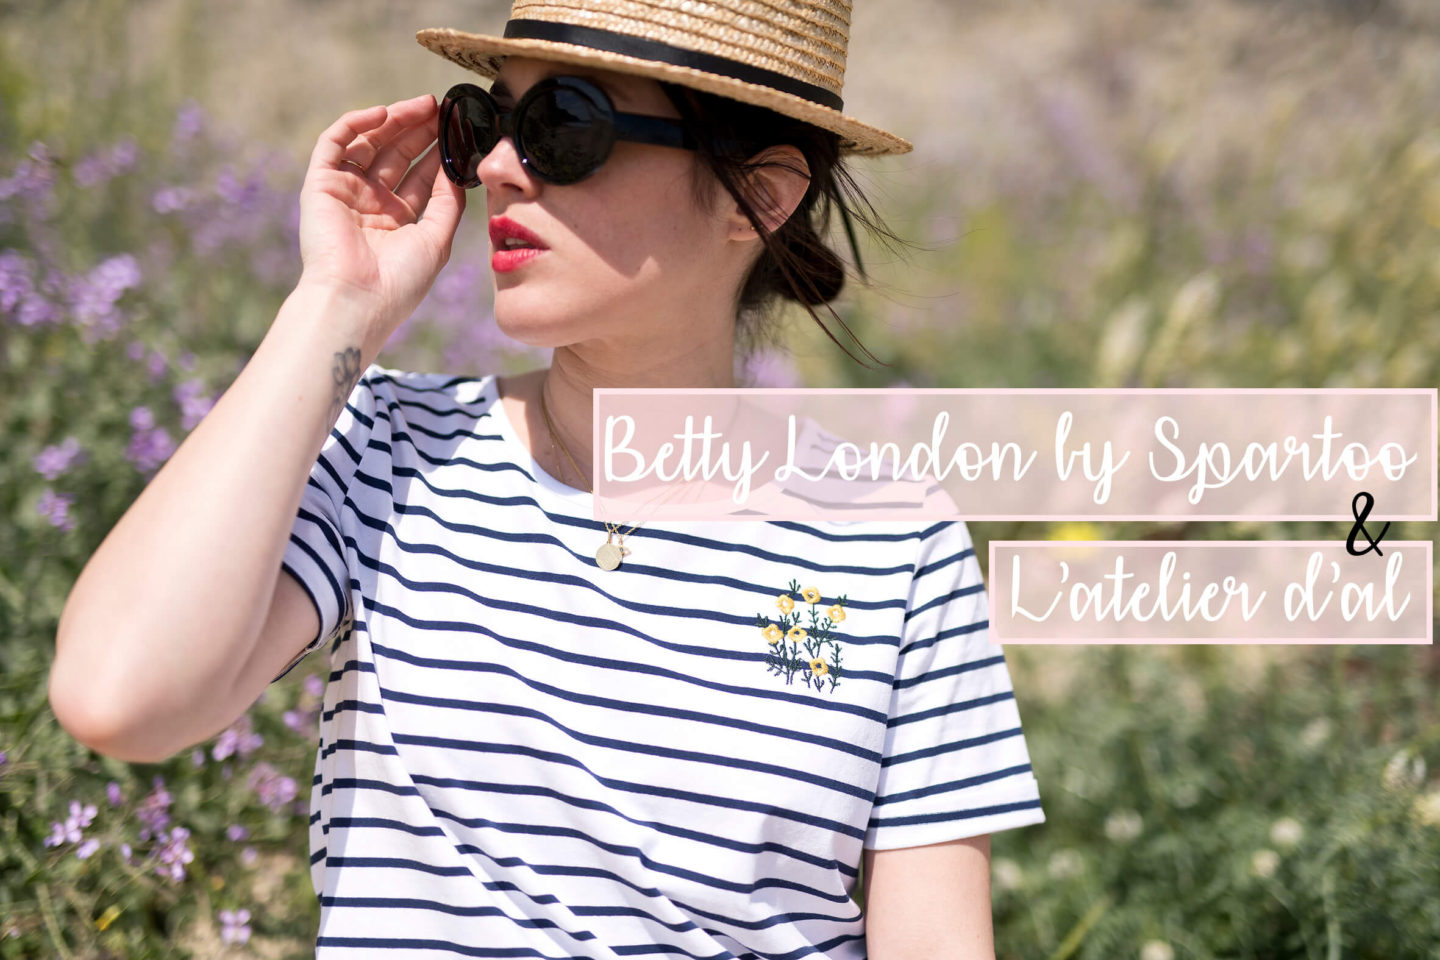 Betty London Spartoo X L'atelier d'al collaboration mode Blog lifestyle Fashion Paris